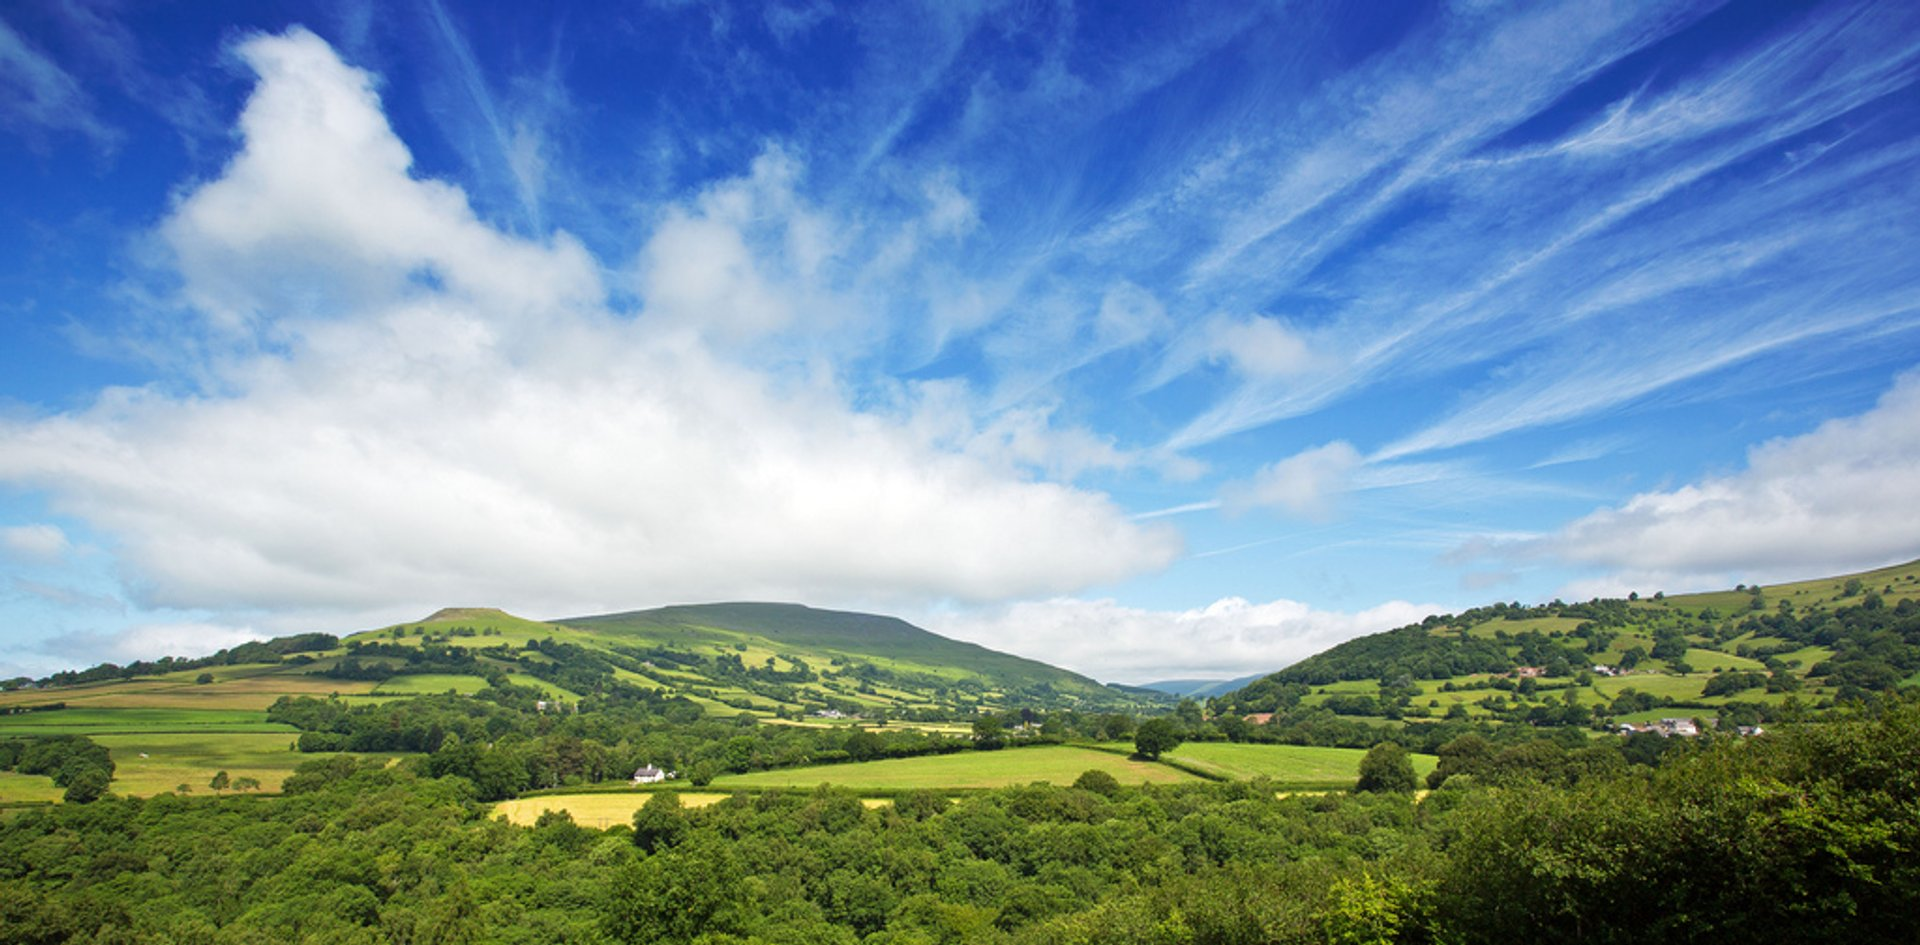 Summer (Haf) in Wales 2020 - Best Time